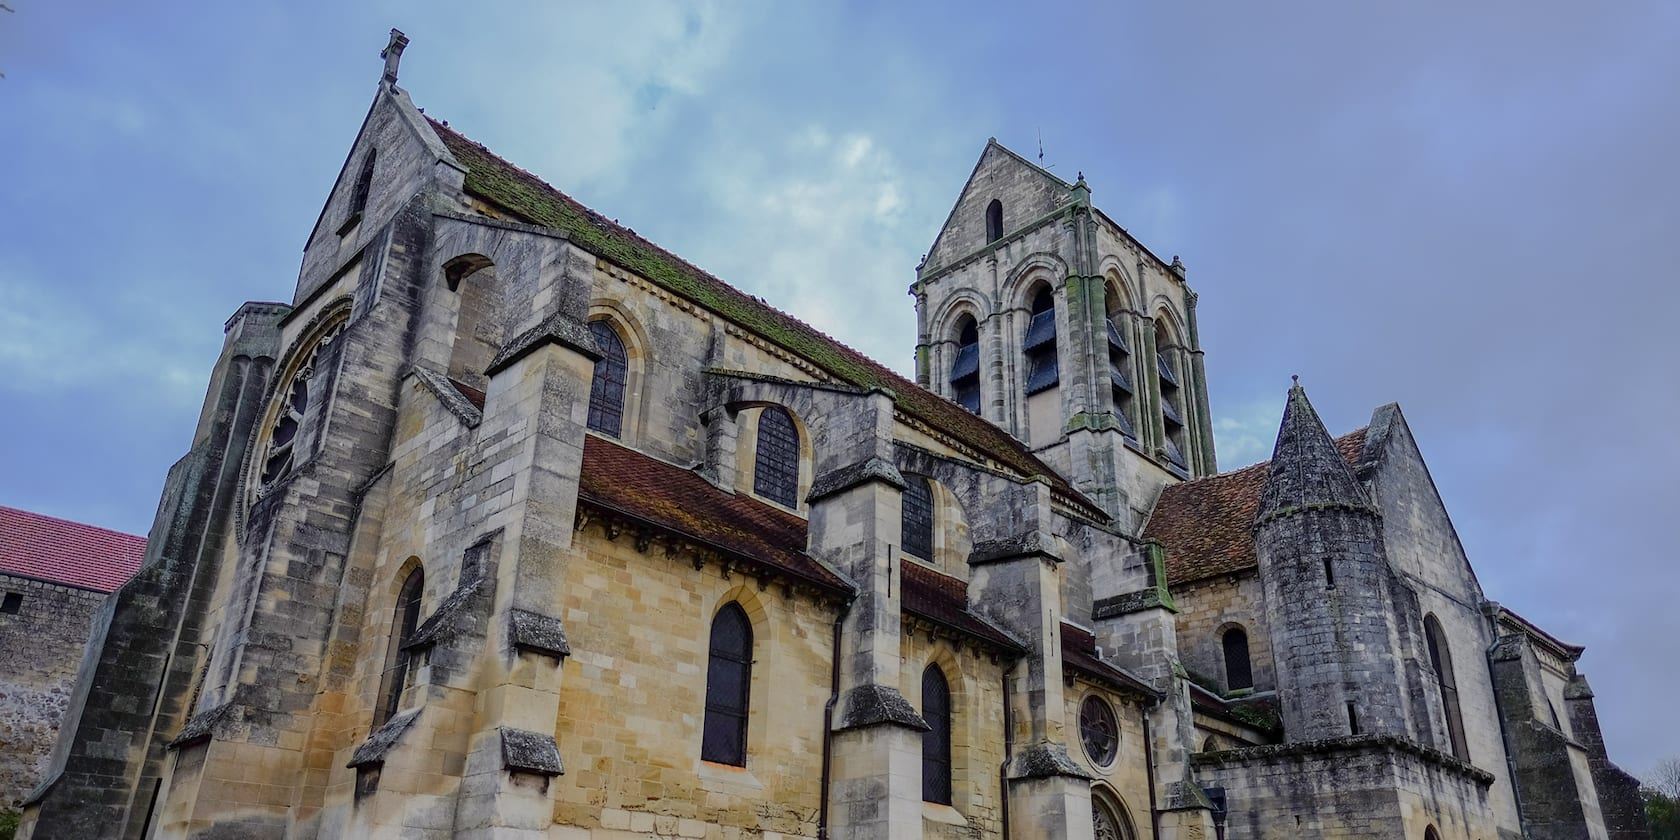 The church of Auvers-sur-Oise in Conflans, France